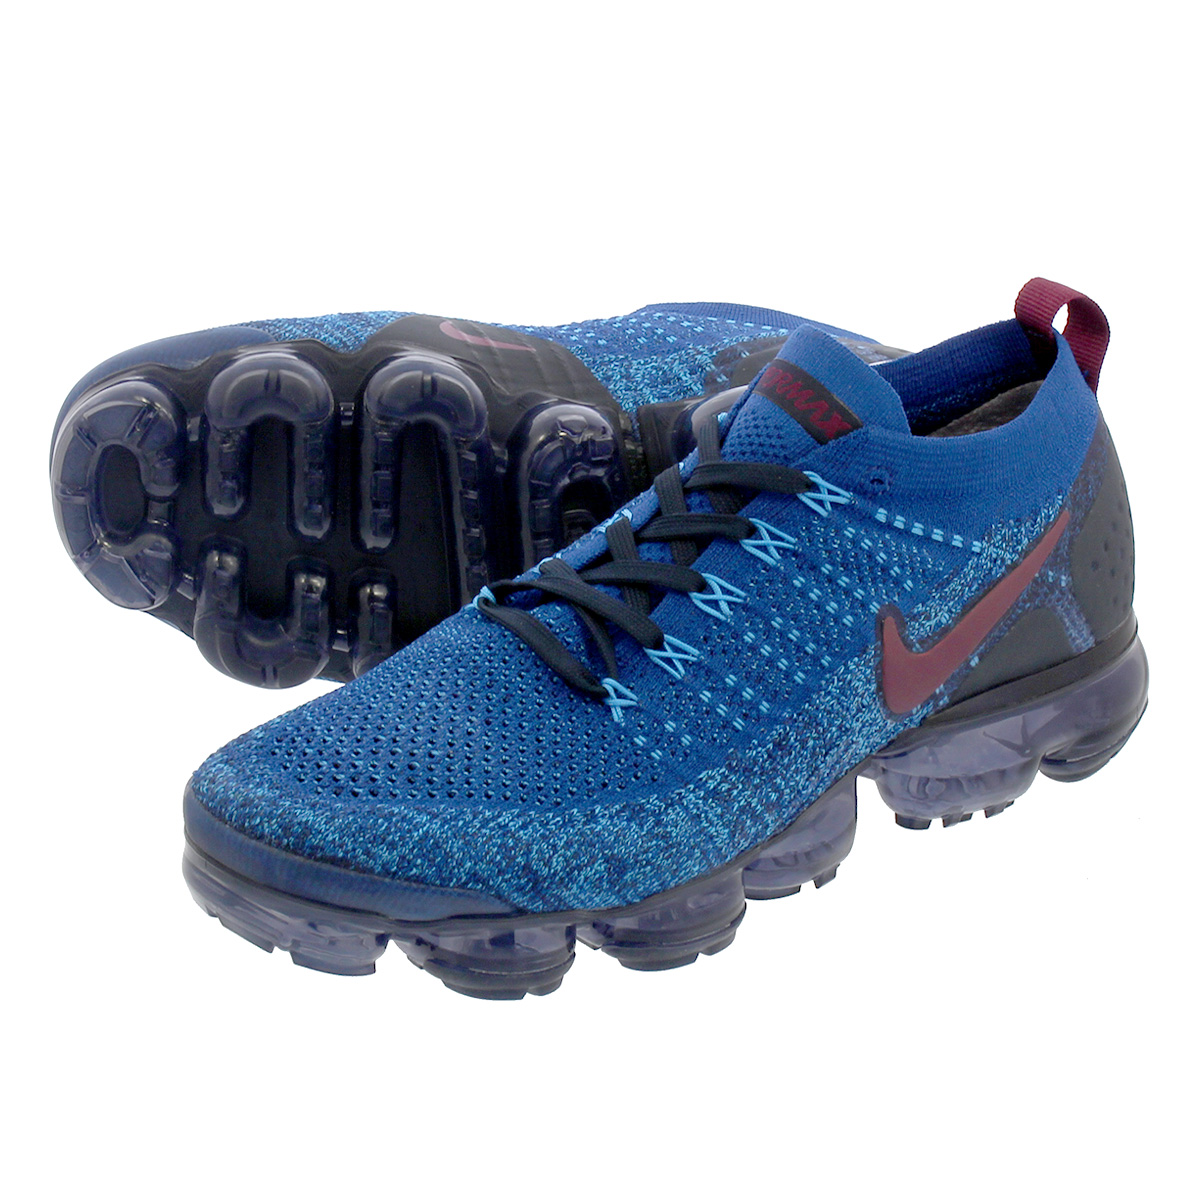 LOWTEX PLUS  NIKE AIR VAPORMAX FLYKNIT 2 Nike vapor max fried food knit 2  GYM BLUE BORDEAUX COLLEGE NAVY BLUE GLOW 942 81212cea5